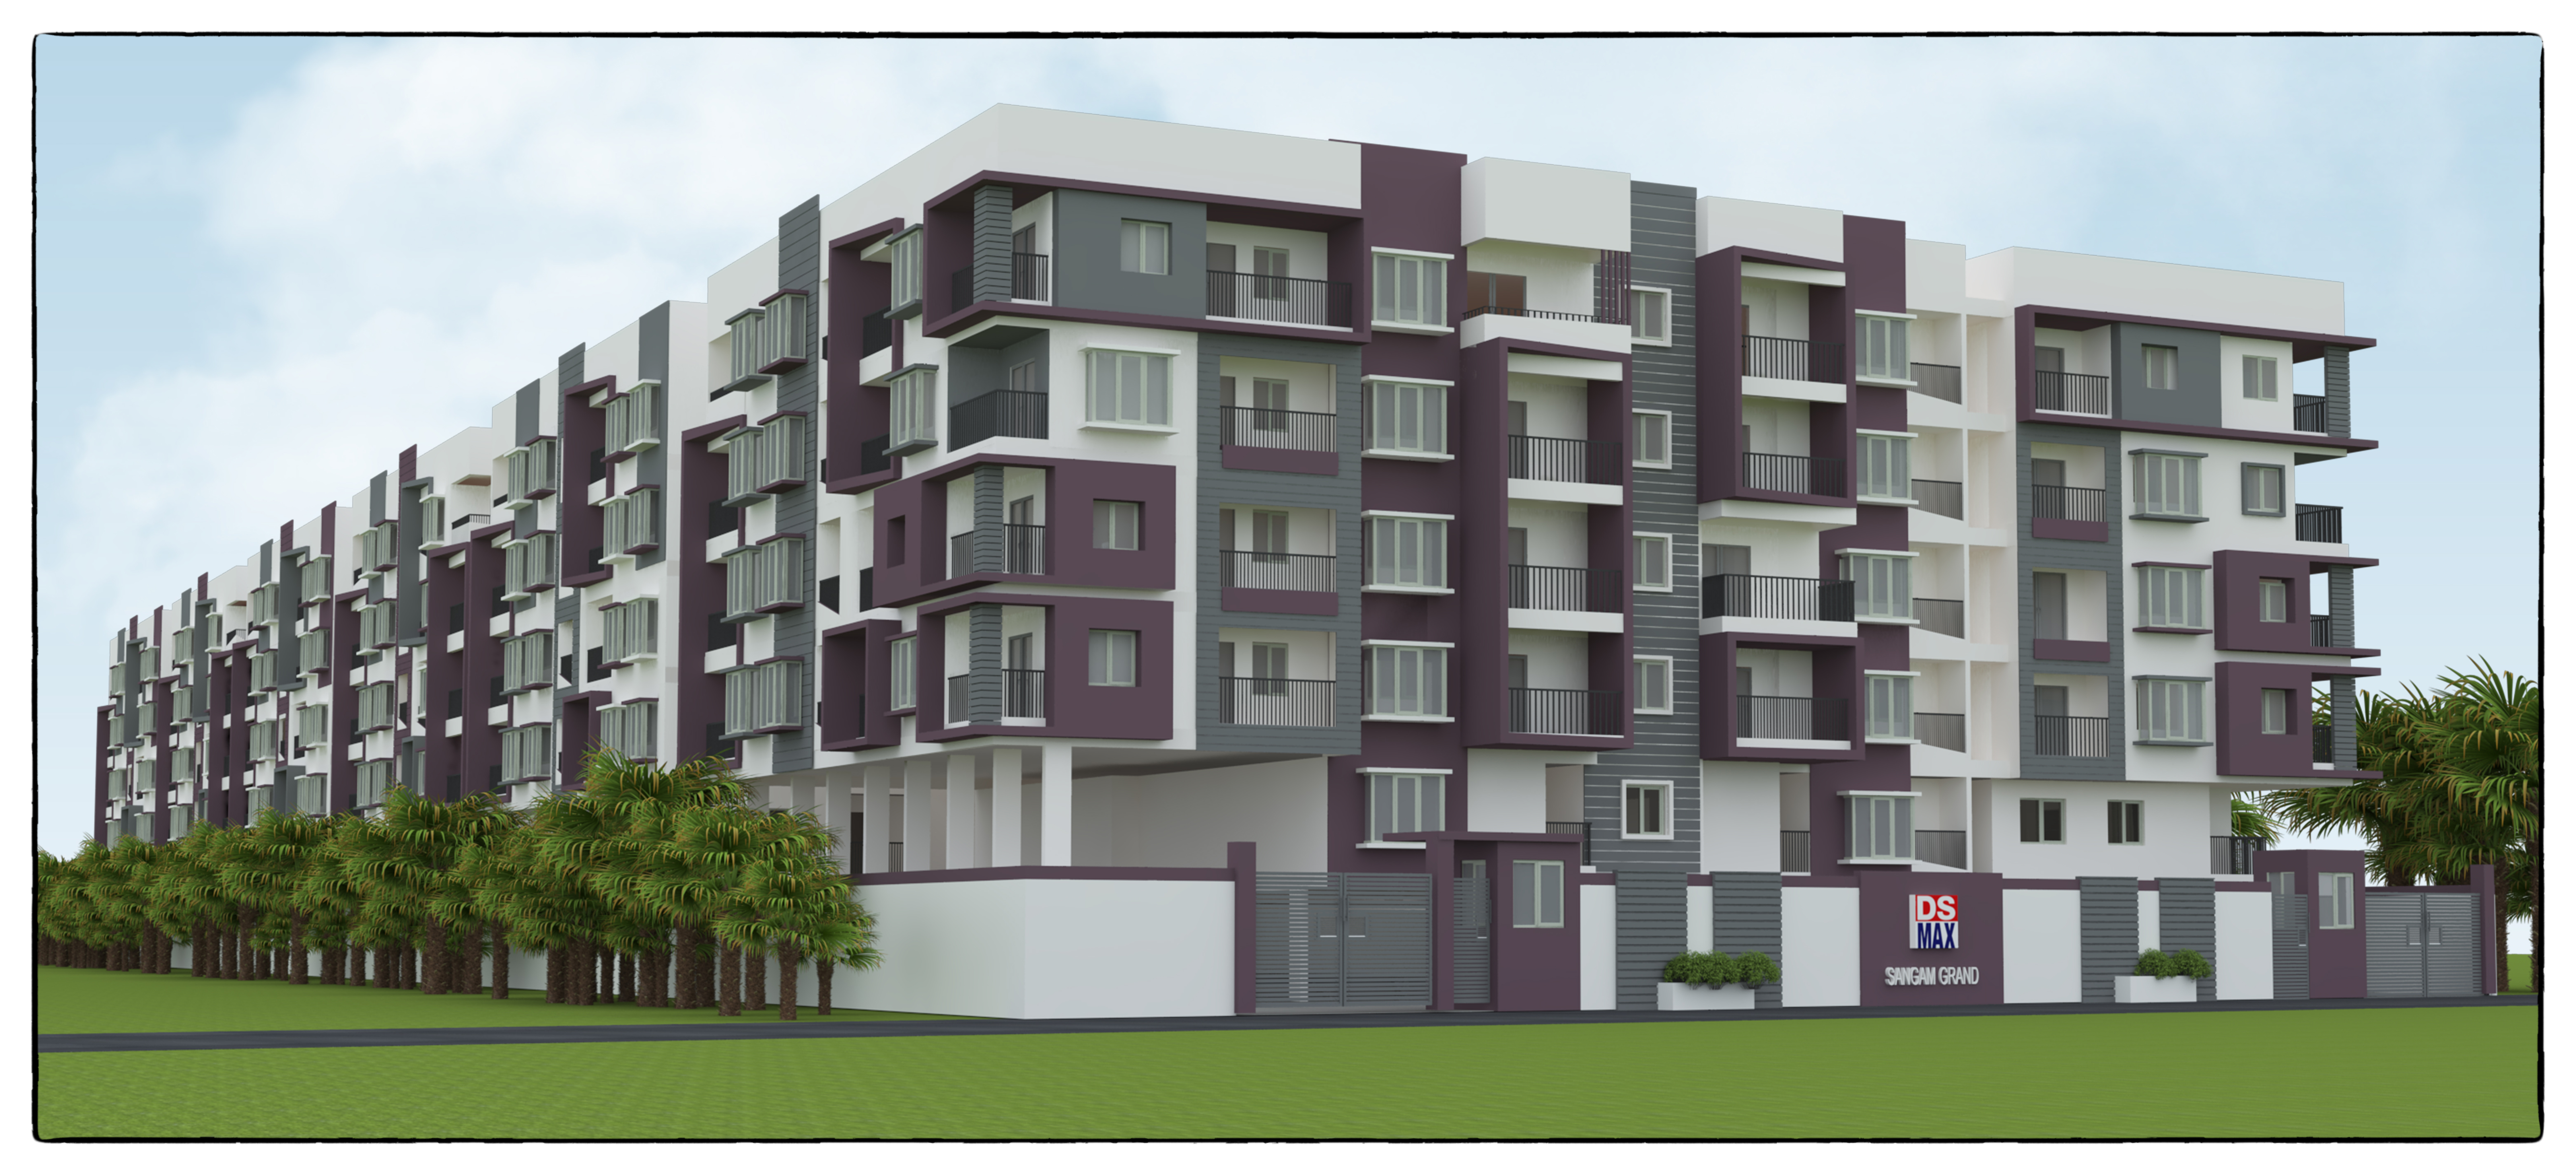 Apartments & Housing Options at Whitefield - DS MAX Sangam Grand